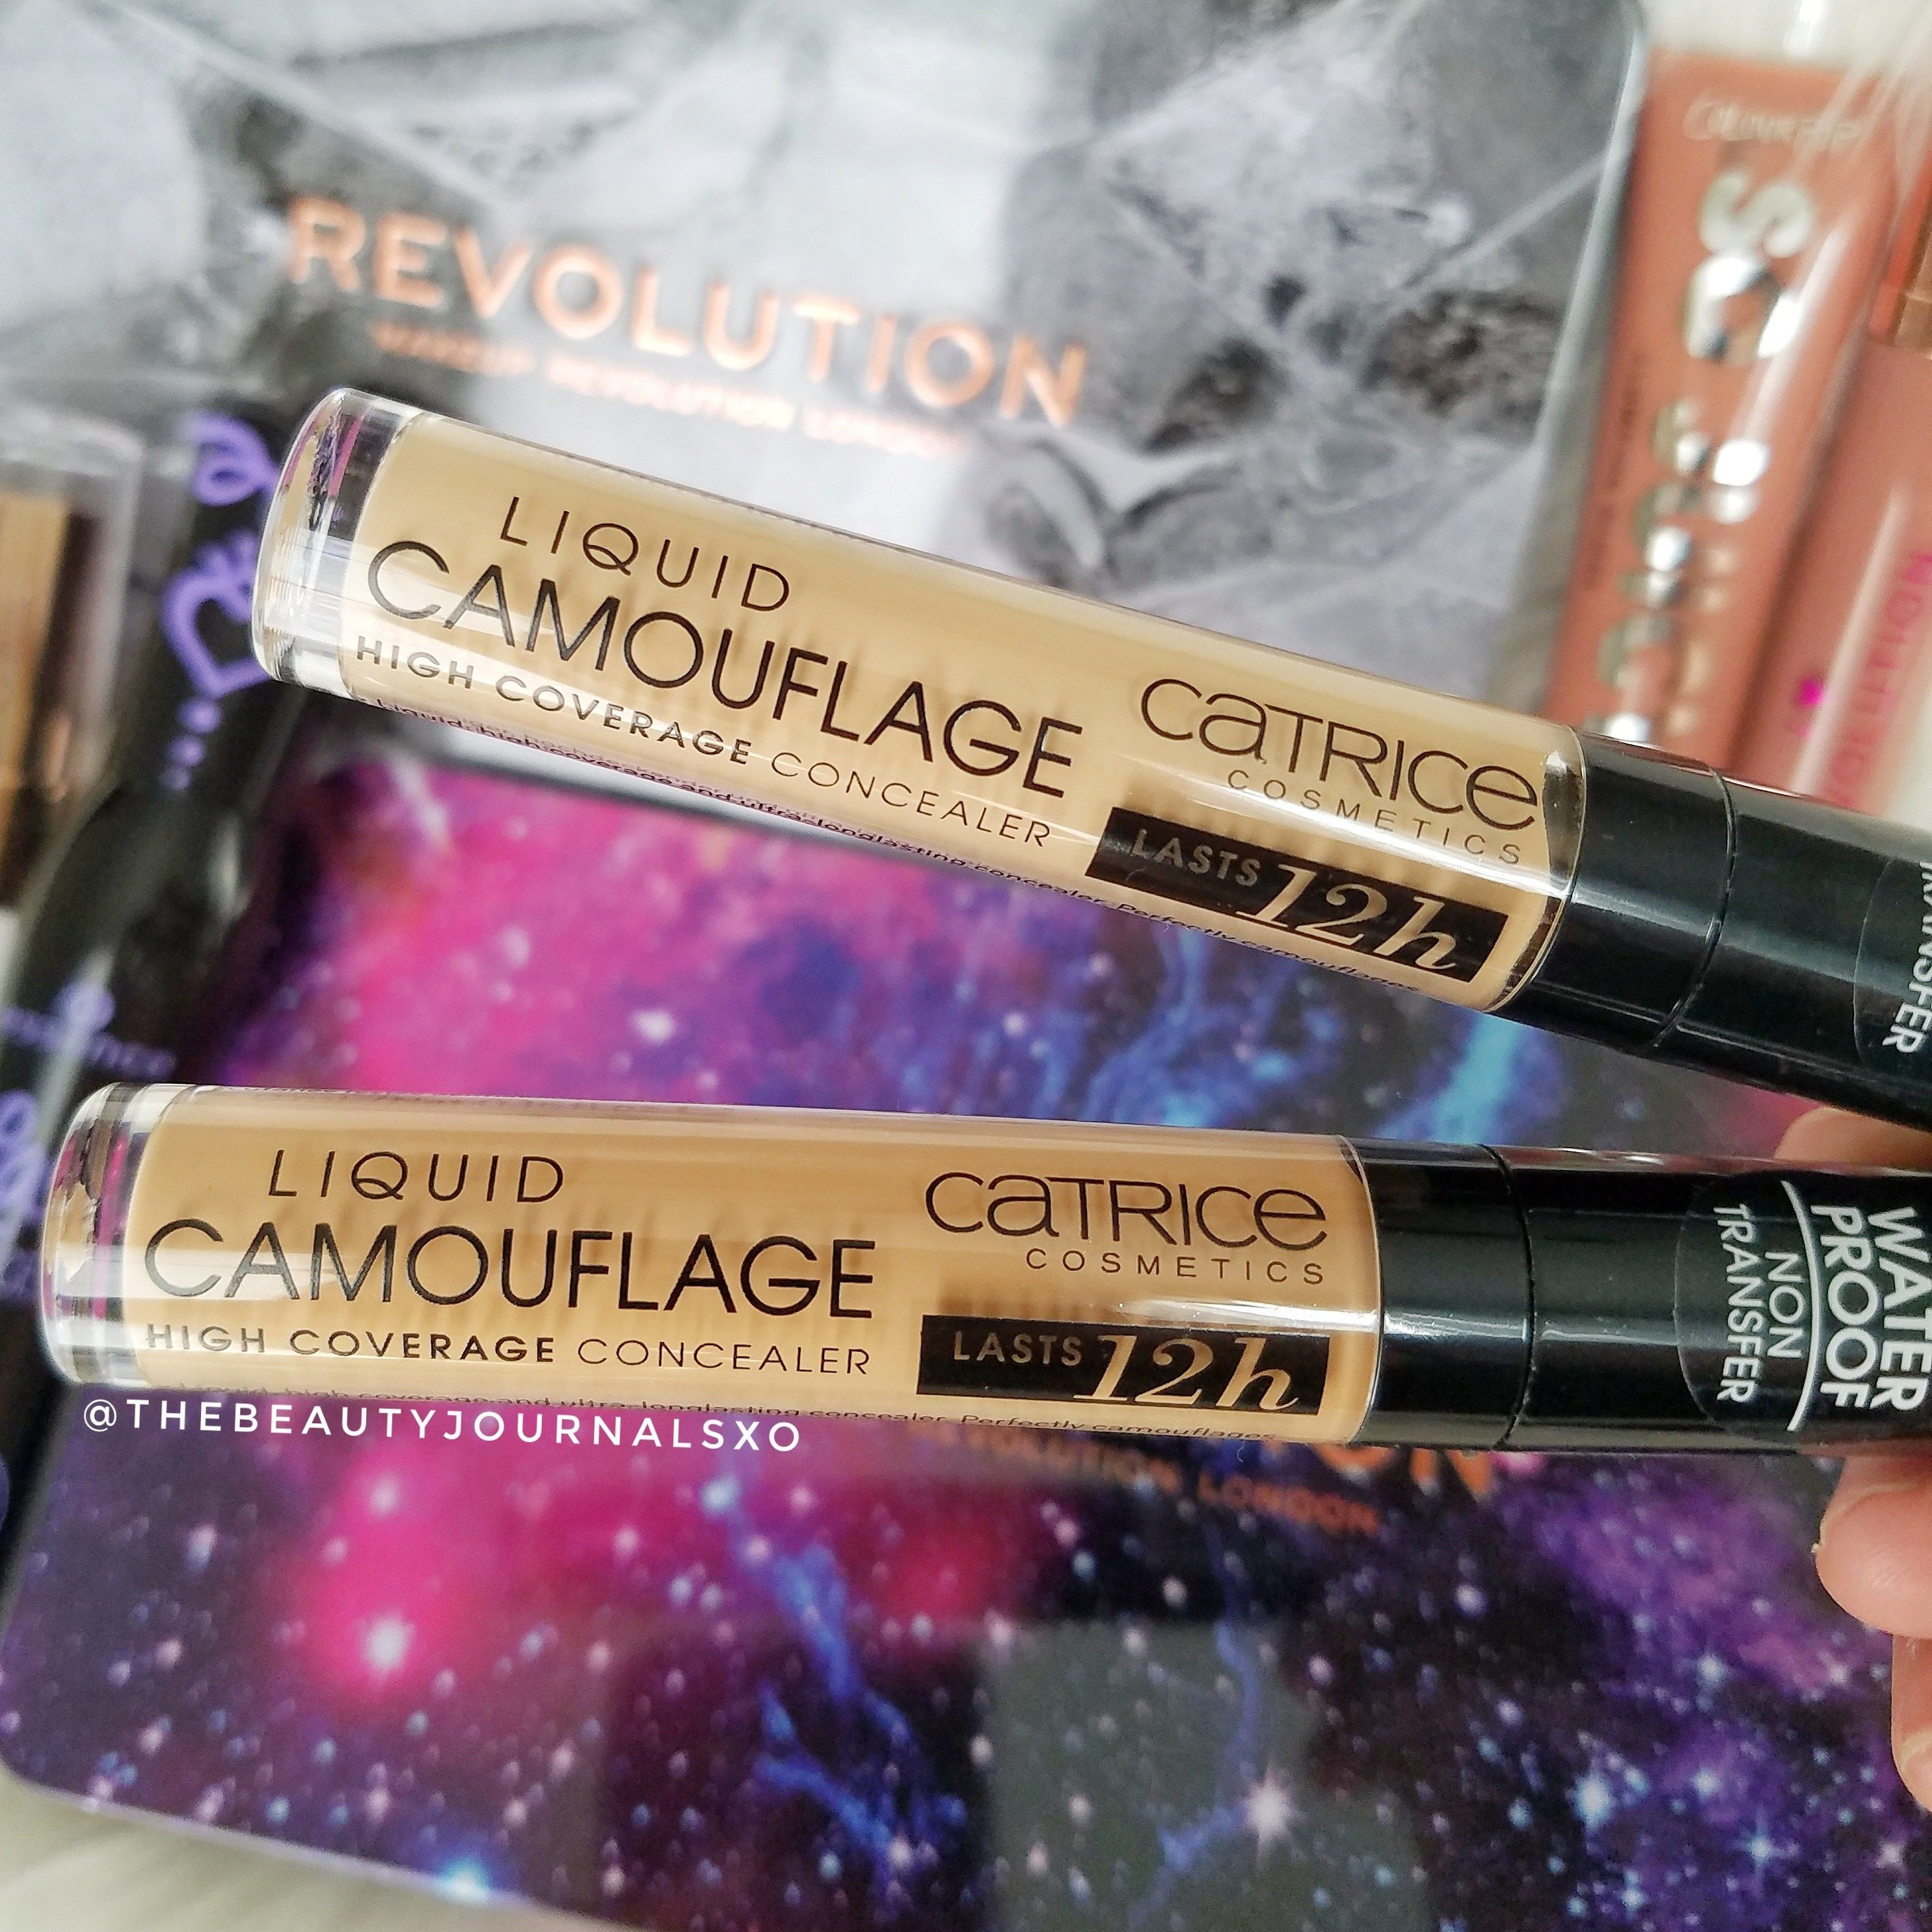 Catrice Liquid Camouflage High Coverage Concealer Review